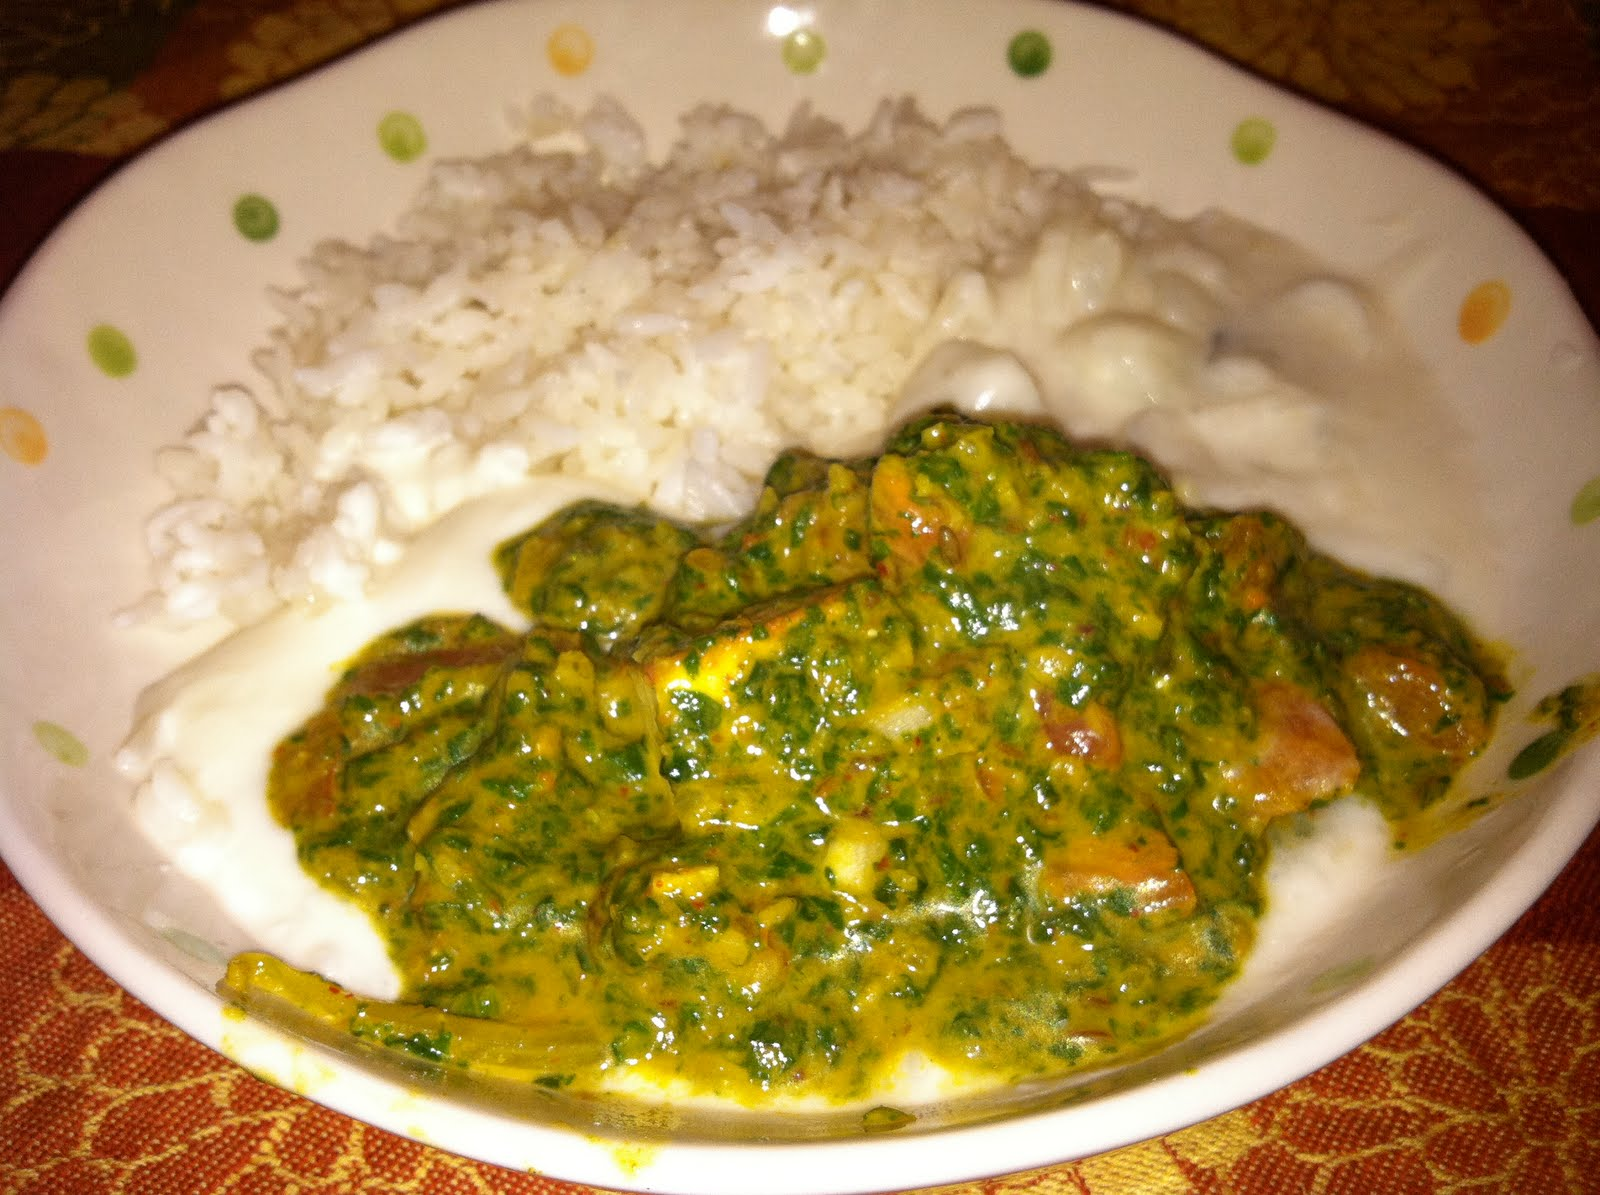 The Curried Cook: Saag Paneer